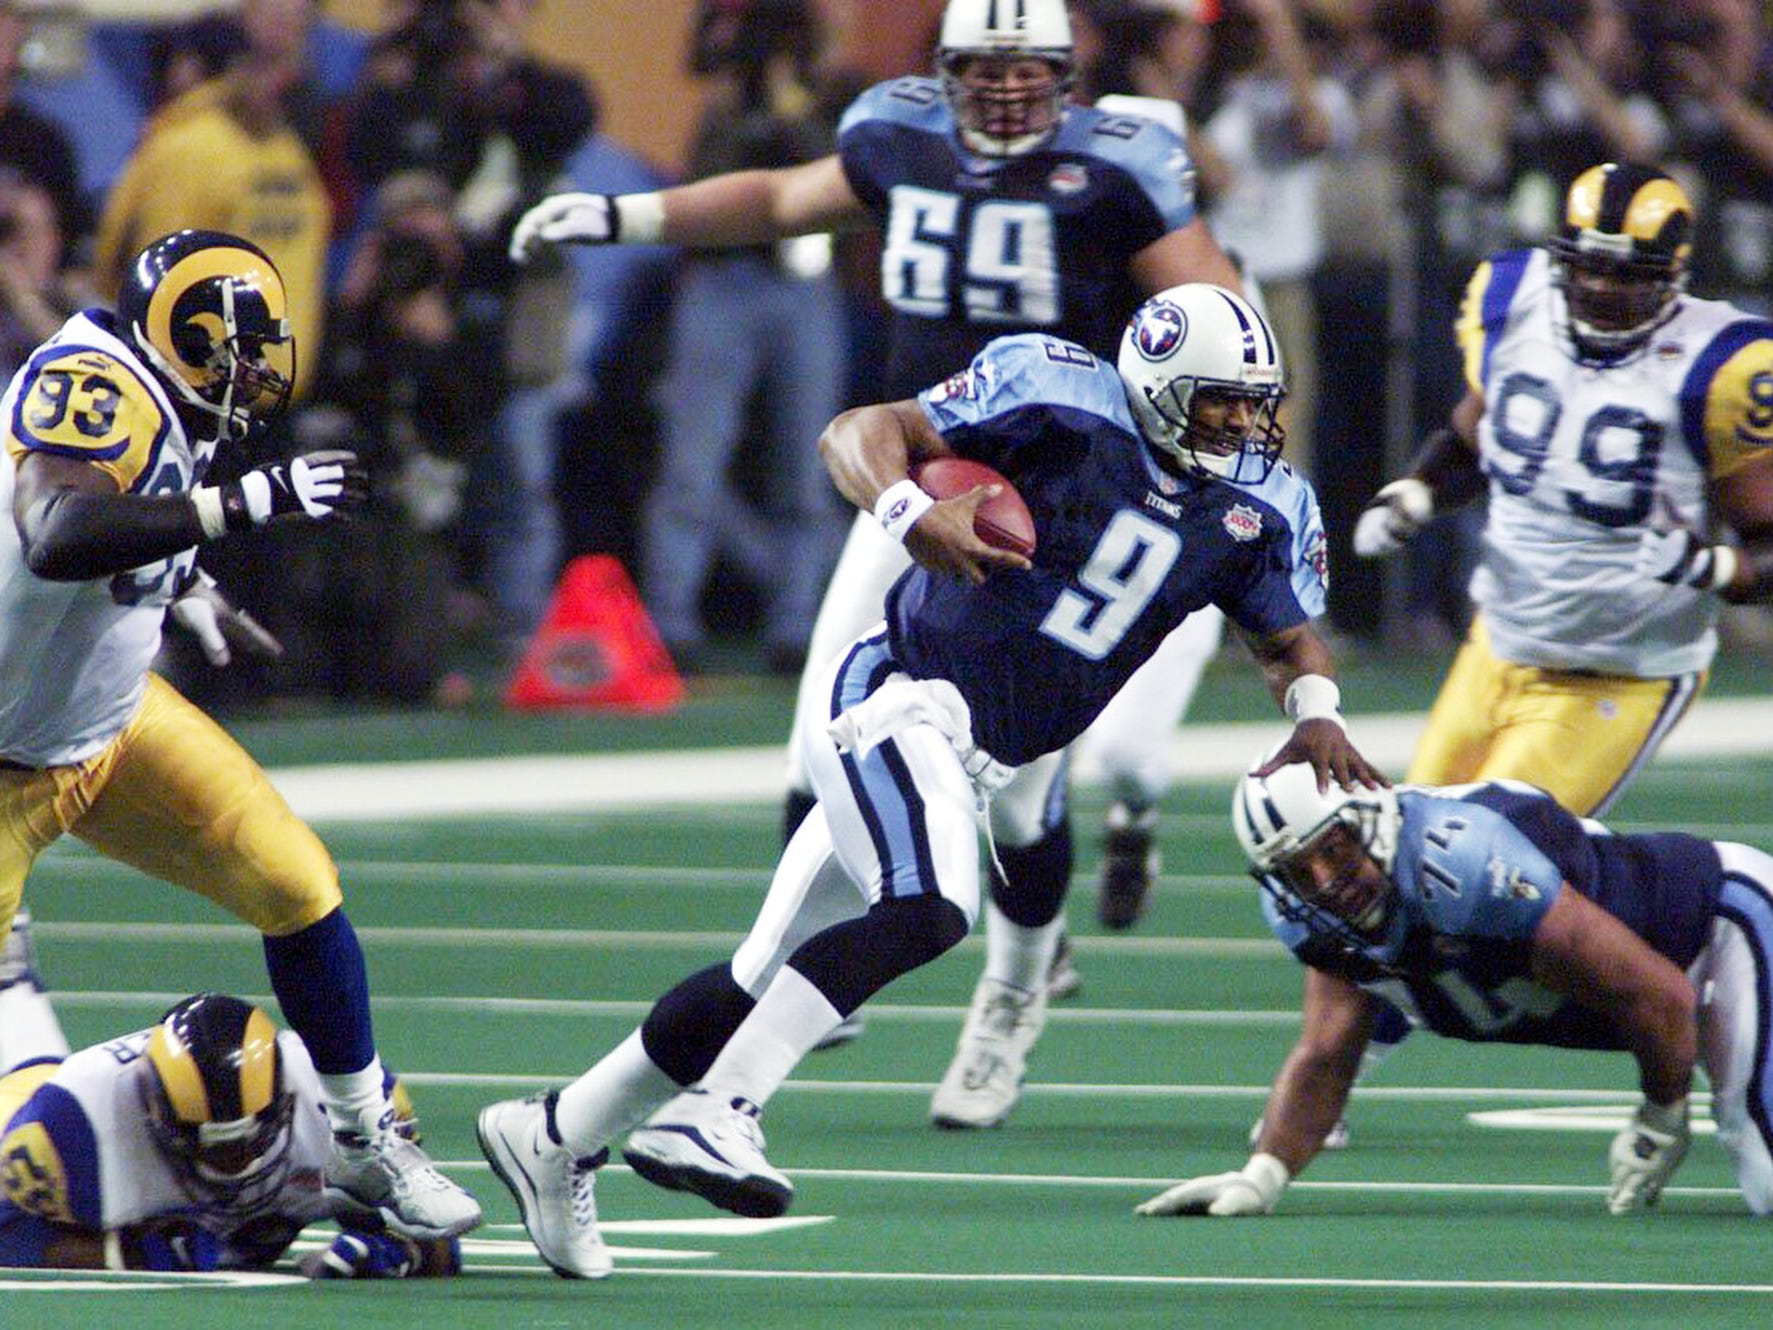 Tennessee Titans quarterback Steve McNair (9) takes off on a run to get away from St. Louis defensive end Kevin Carter (93) in the second quarter of Super Bowl XXXIV Jan. 30, 2000 in Atlanta. The Titans just fell inches short in a 23-16 Rams' victory in Super Bowl XXXIV.